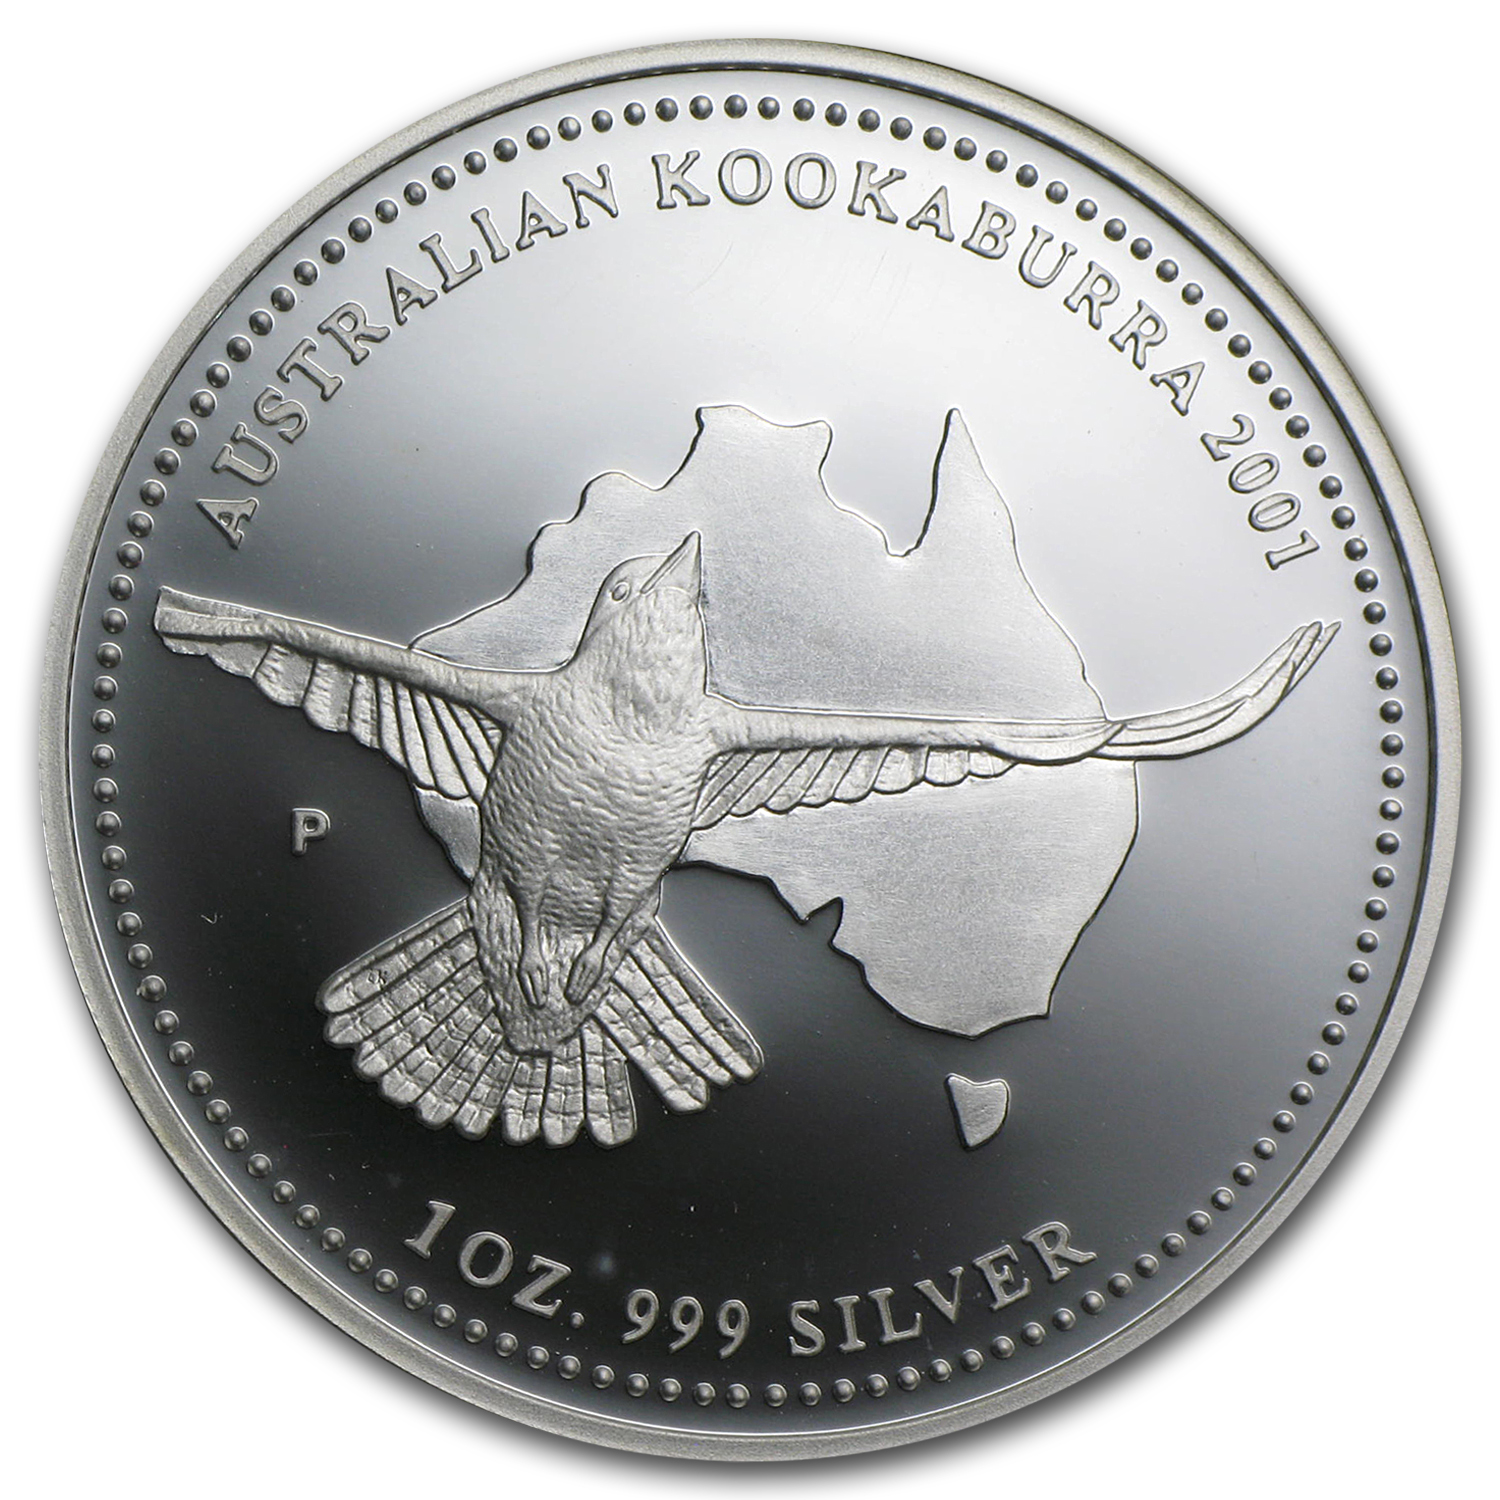 2001 Australia 1 oz Silver Kookaburra Proof (Spotty)